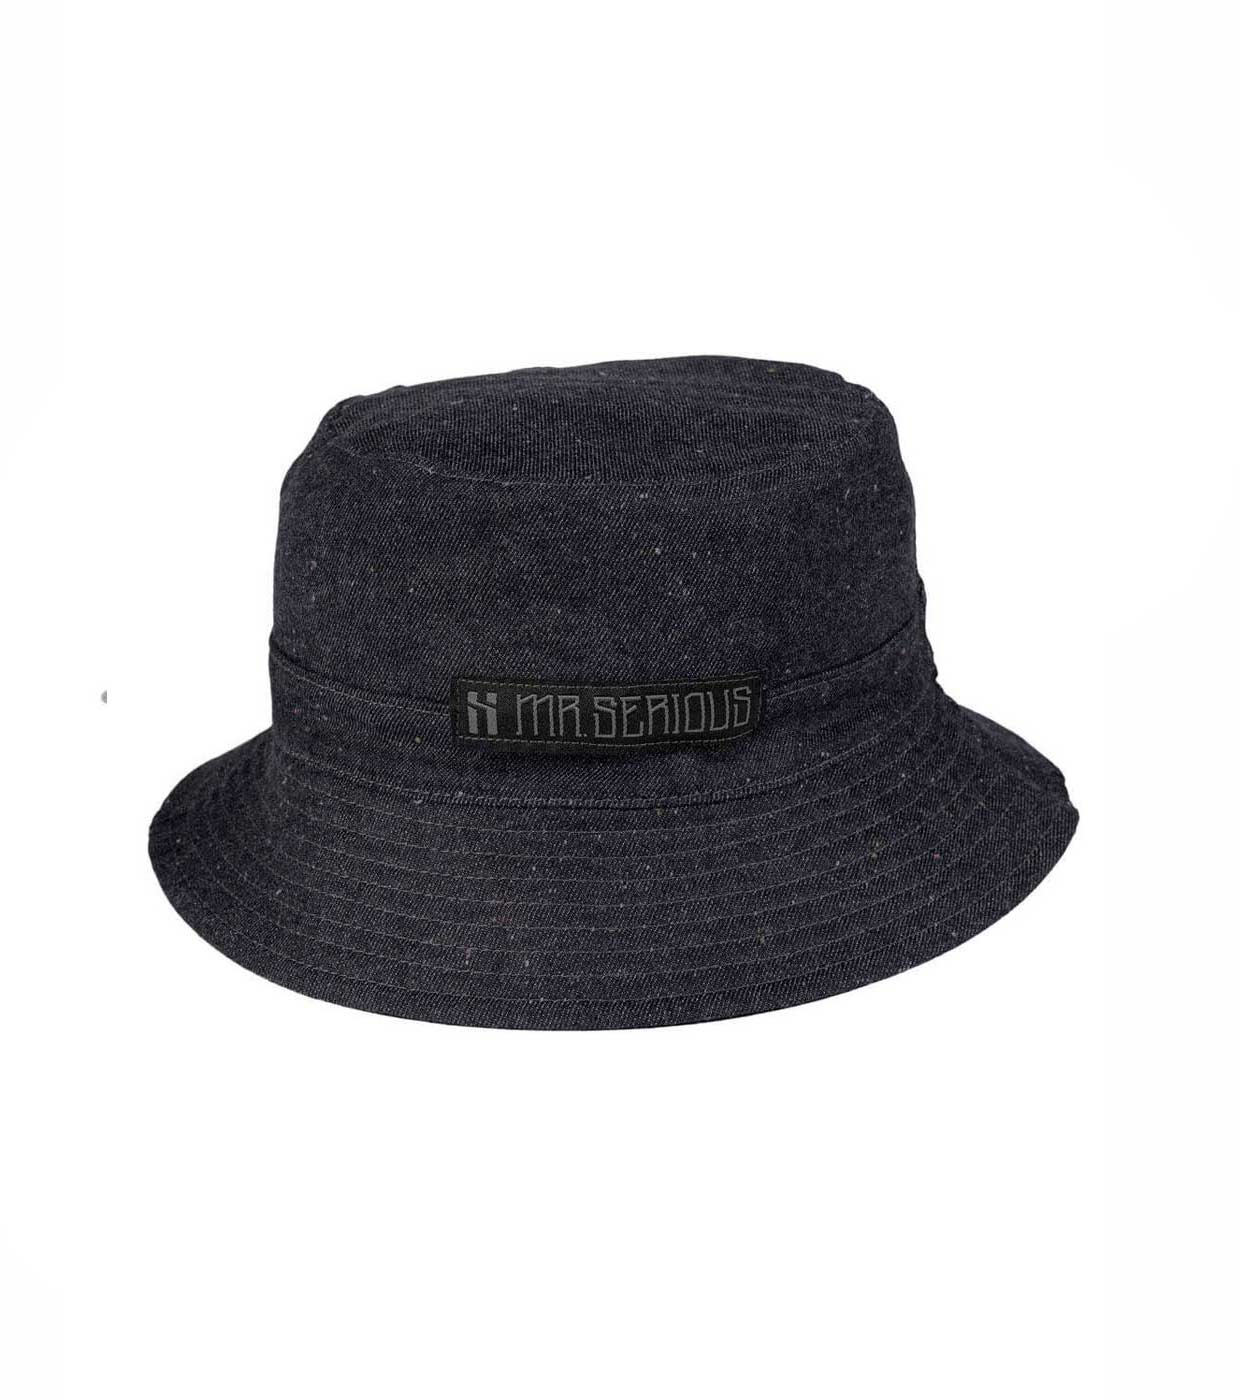 Mr.Serious Reversible Bucket Hat